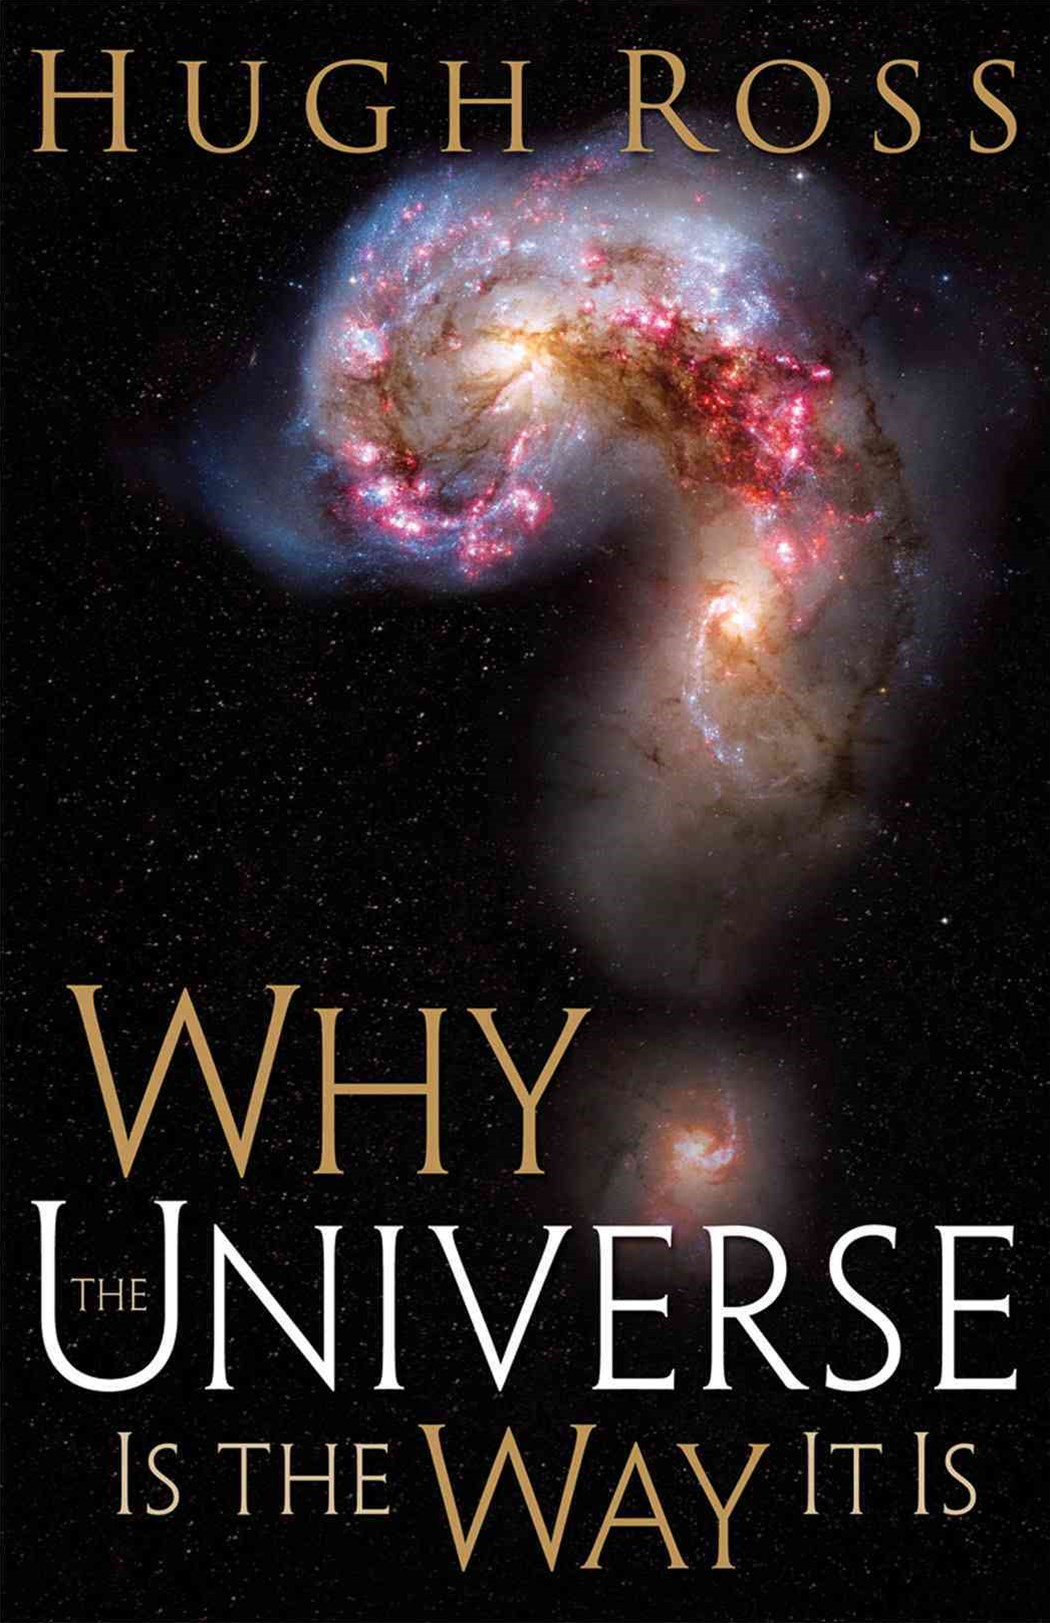 Why the Universe is the Way it is